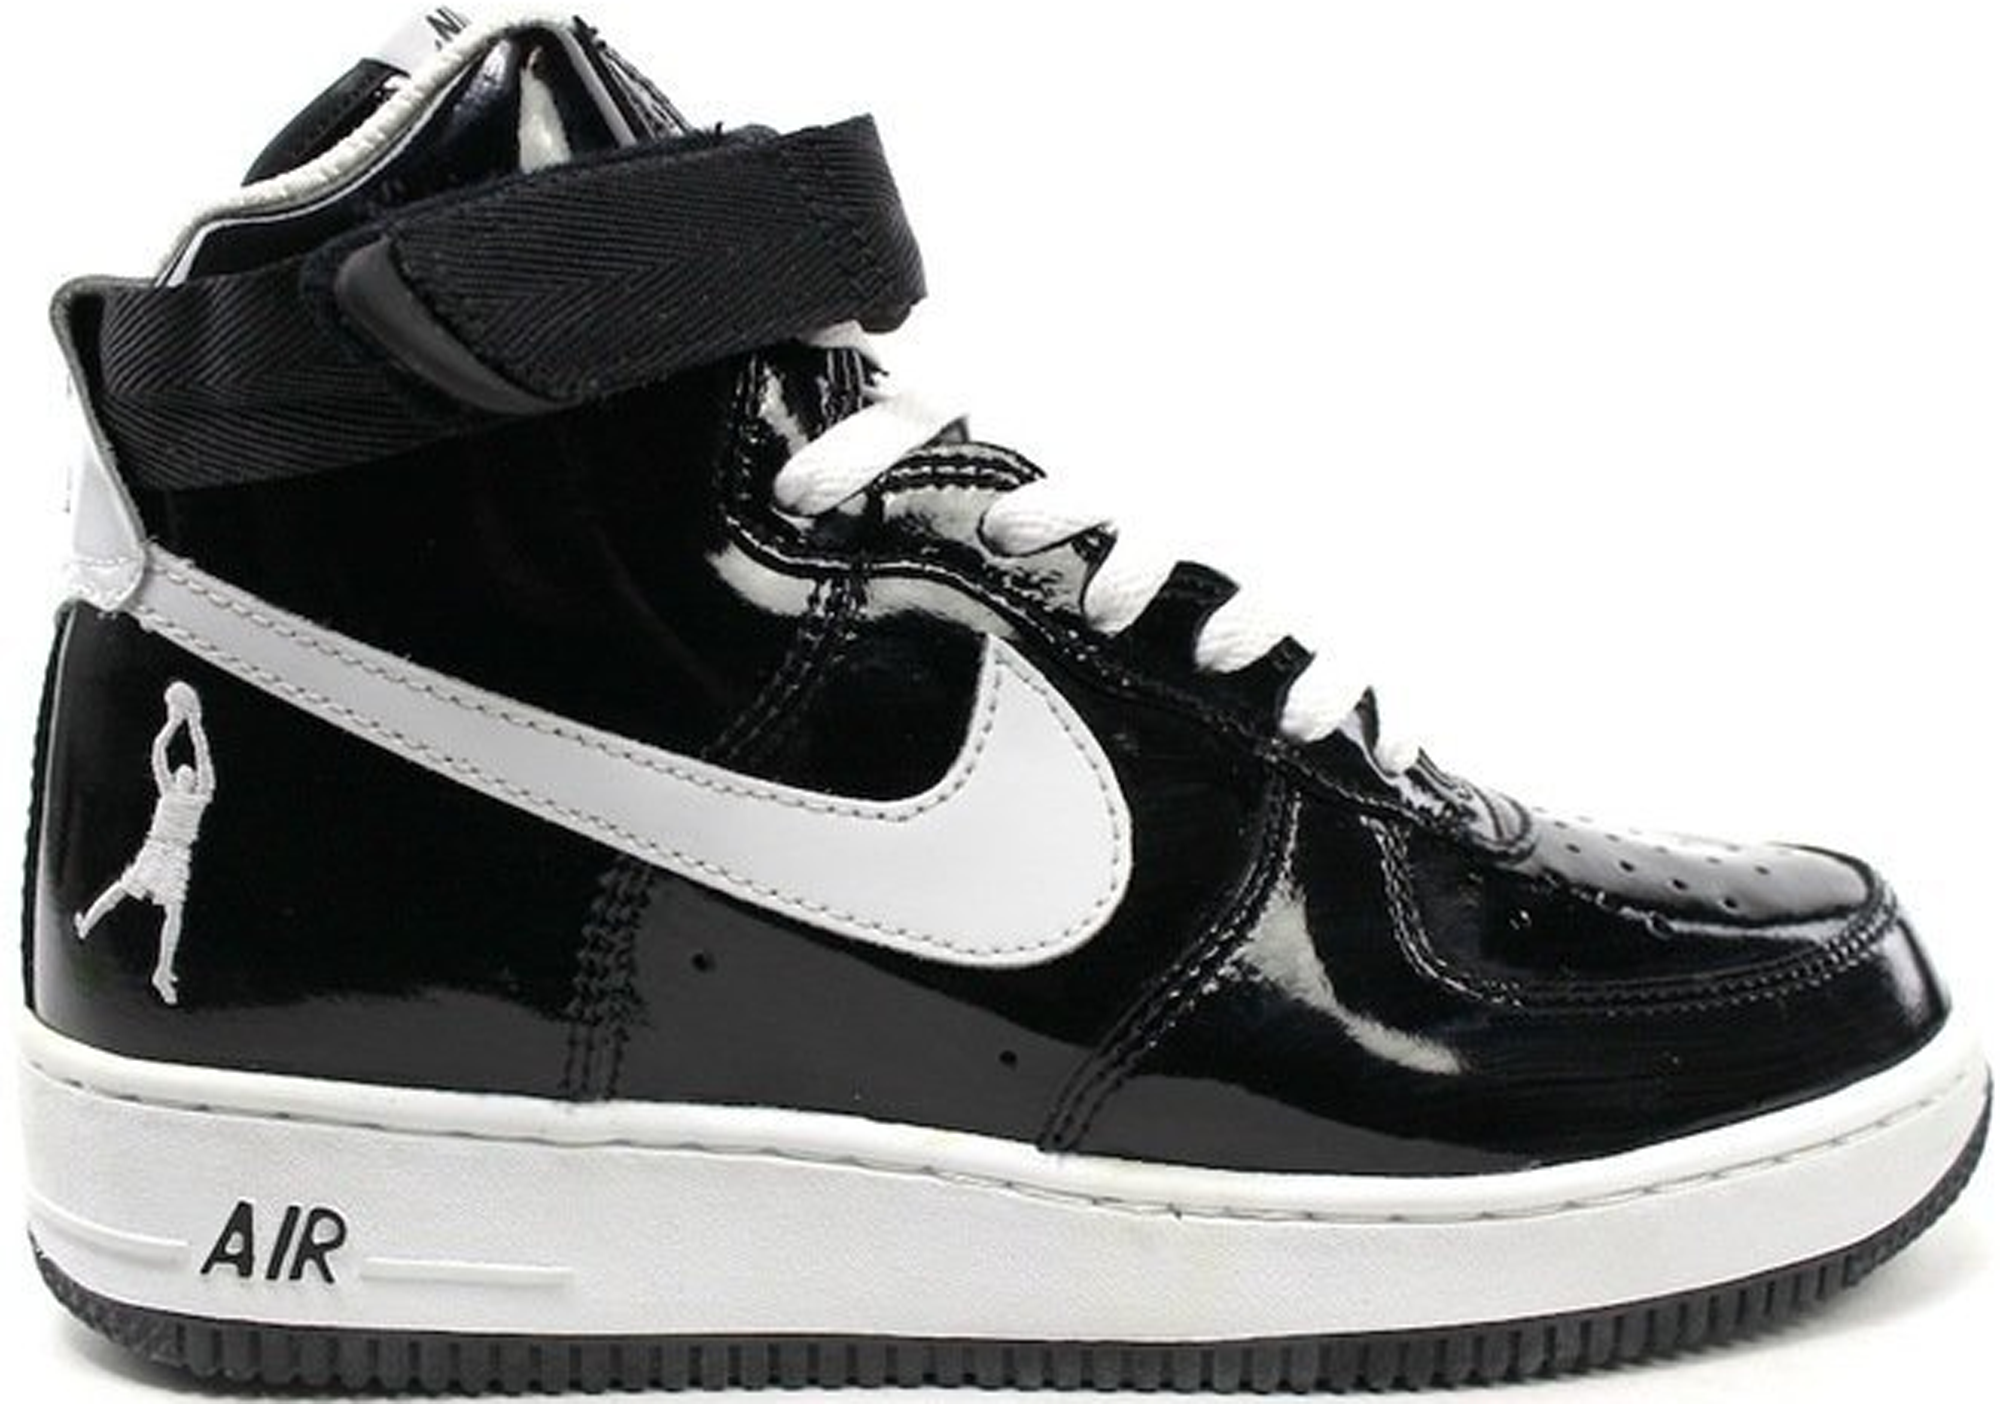 Air Force 1 High Sheed Black Patent